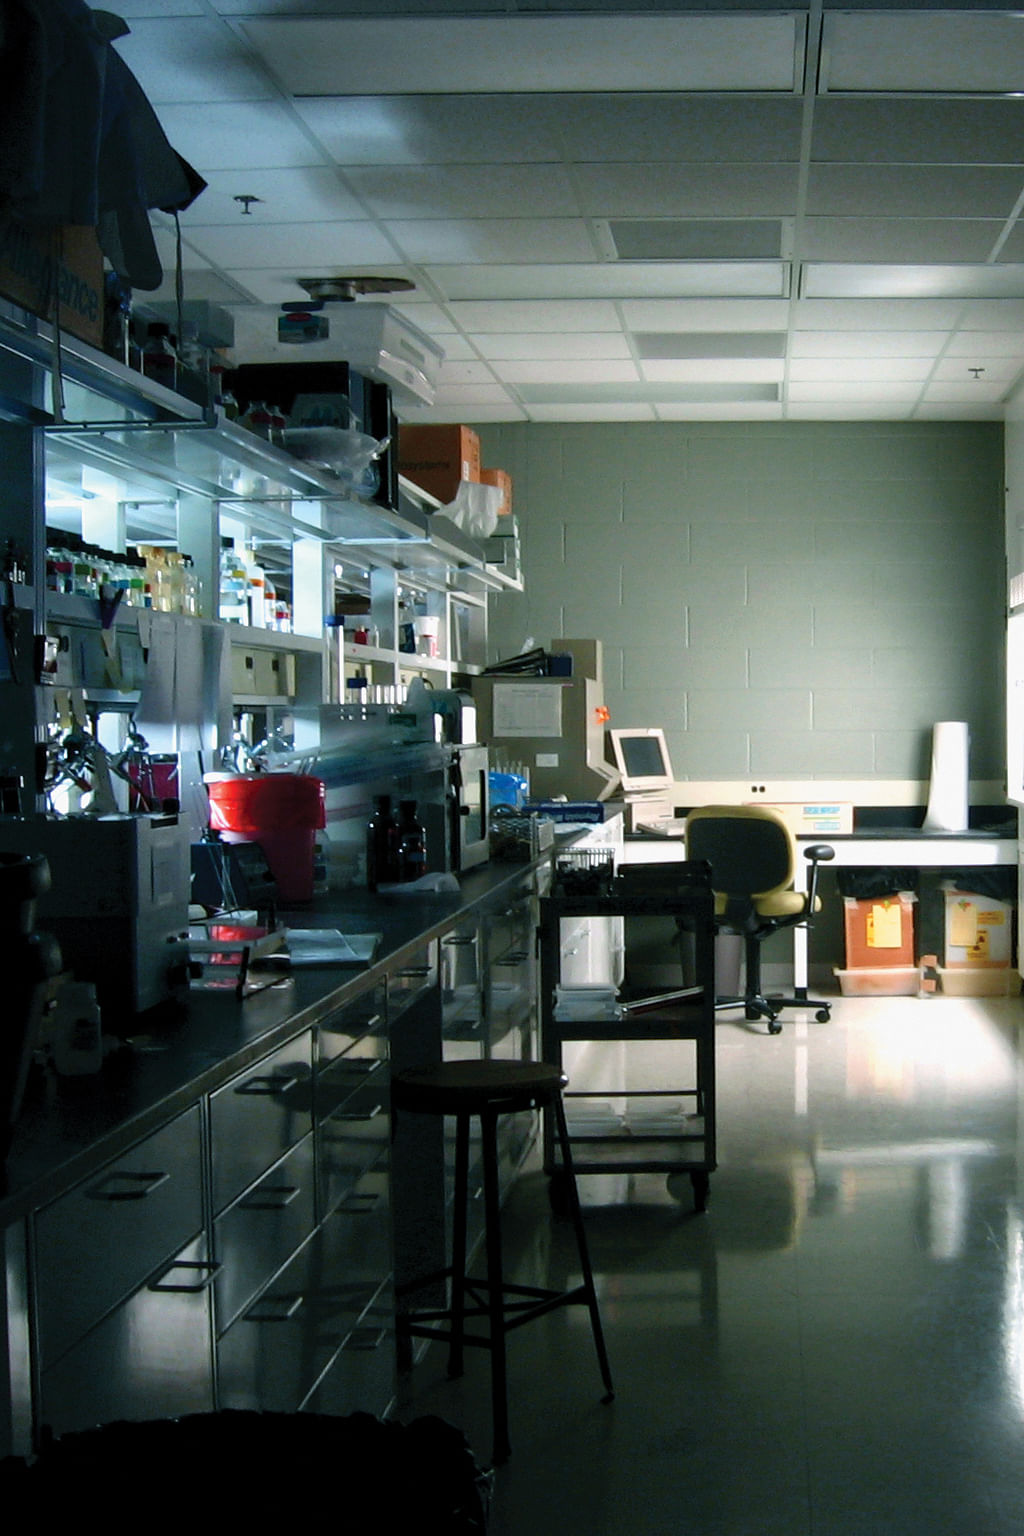 A vacant lab